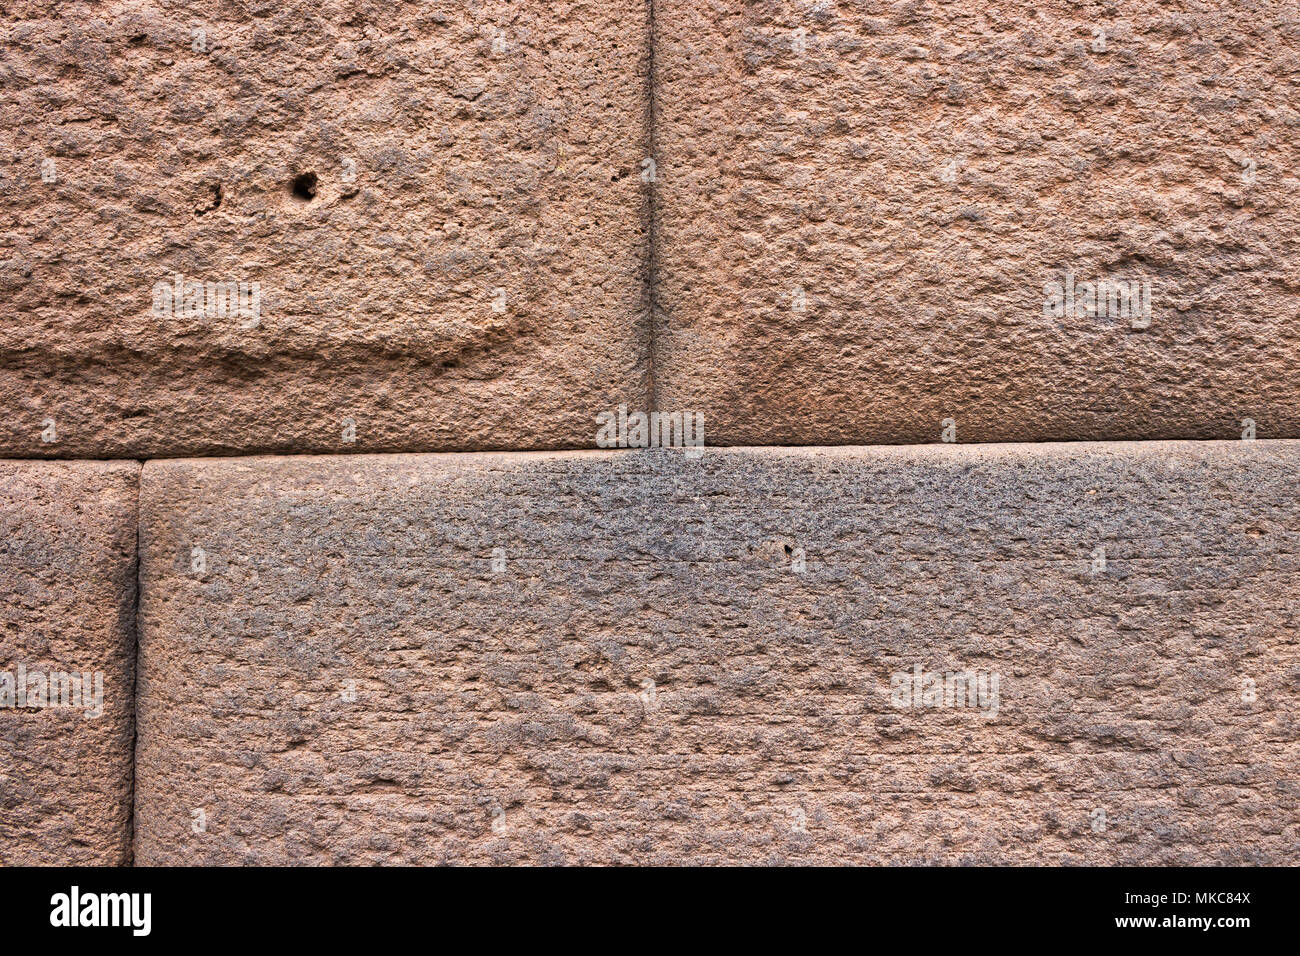 Close-up Detail of Inca Ashlar Wall Precise Stone Block Jointing, Cusco, Peru - Stock Image